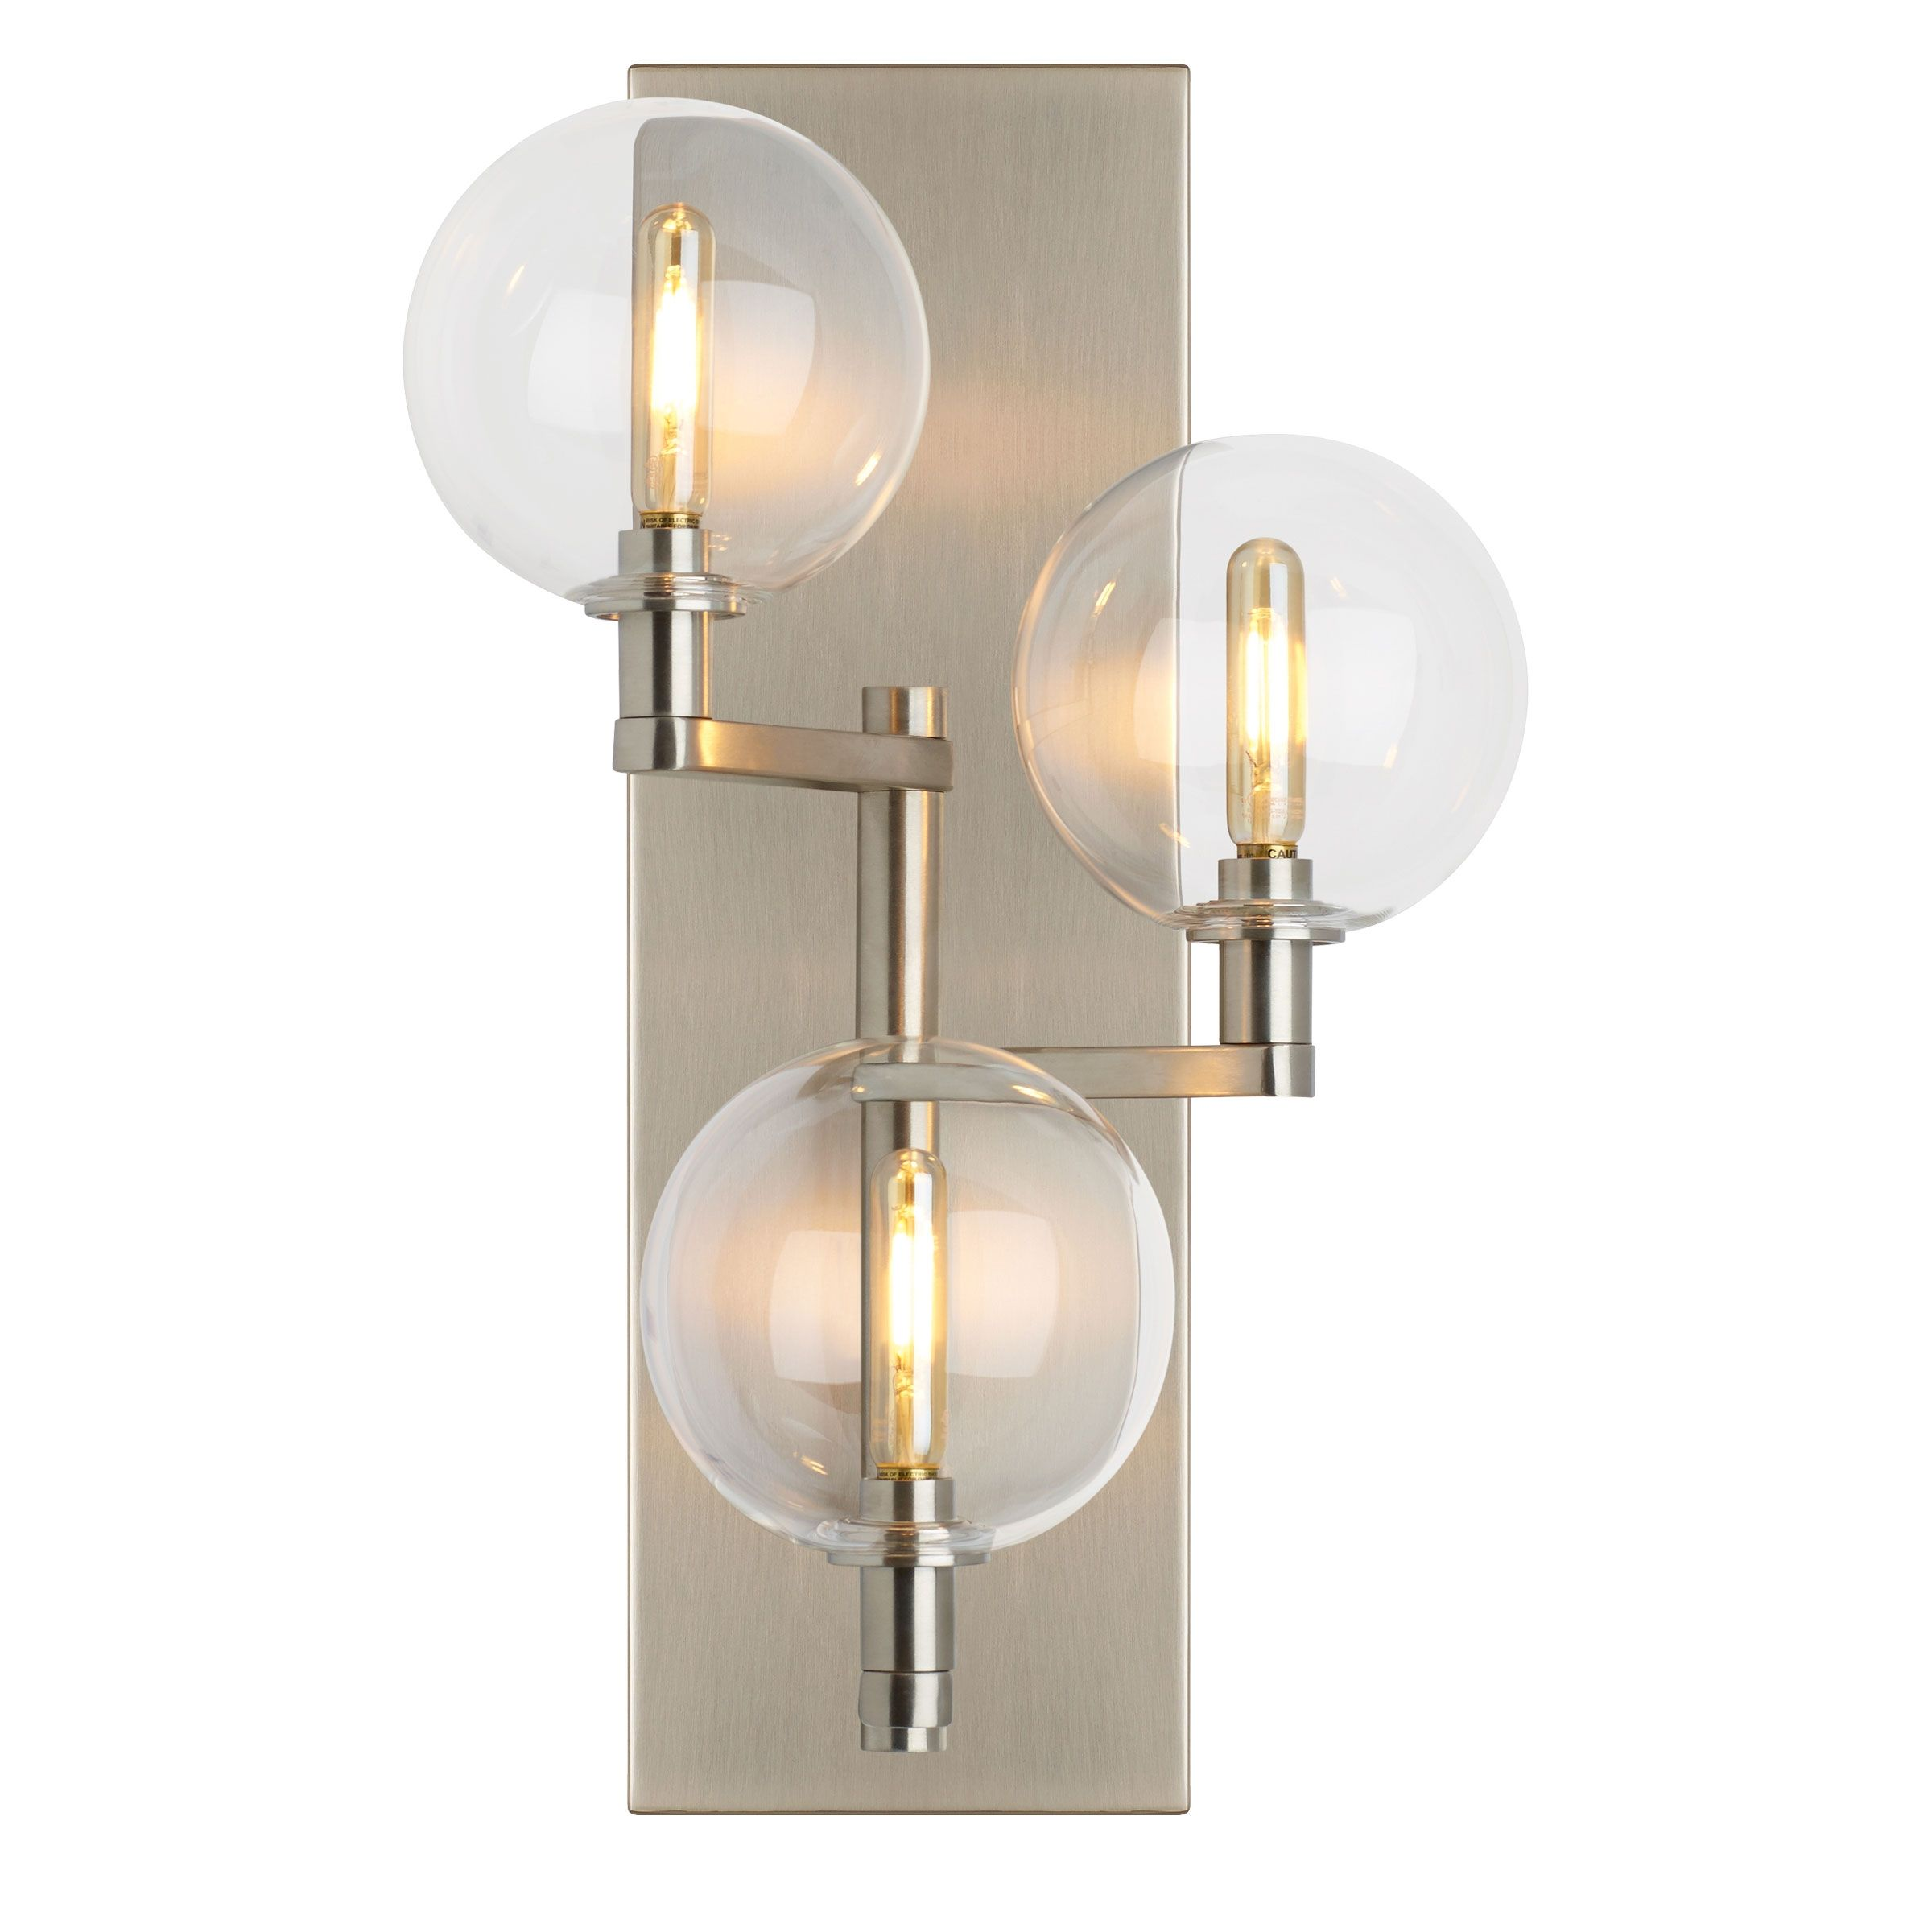 Gambit triple wall light tech lighting at lightology sconces the gambit led multiport chandelier family from tech lighting exudes undeniable beauty and warm contemporary style through its bold use of high end mixed arubaitofo Image collections